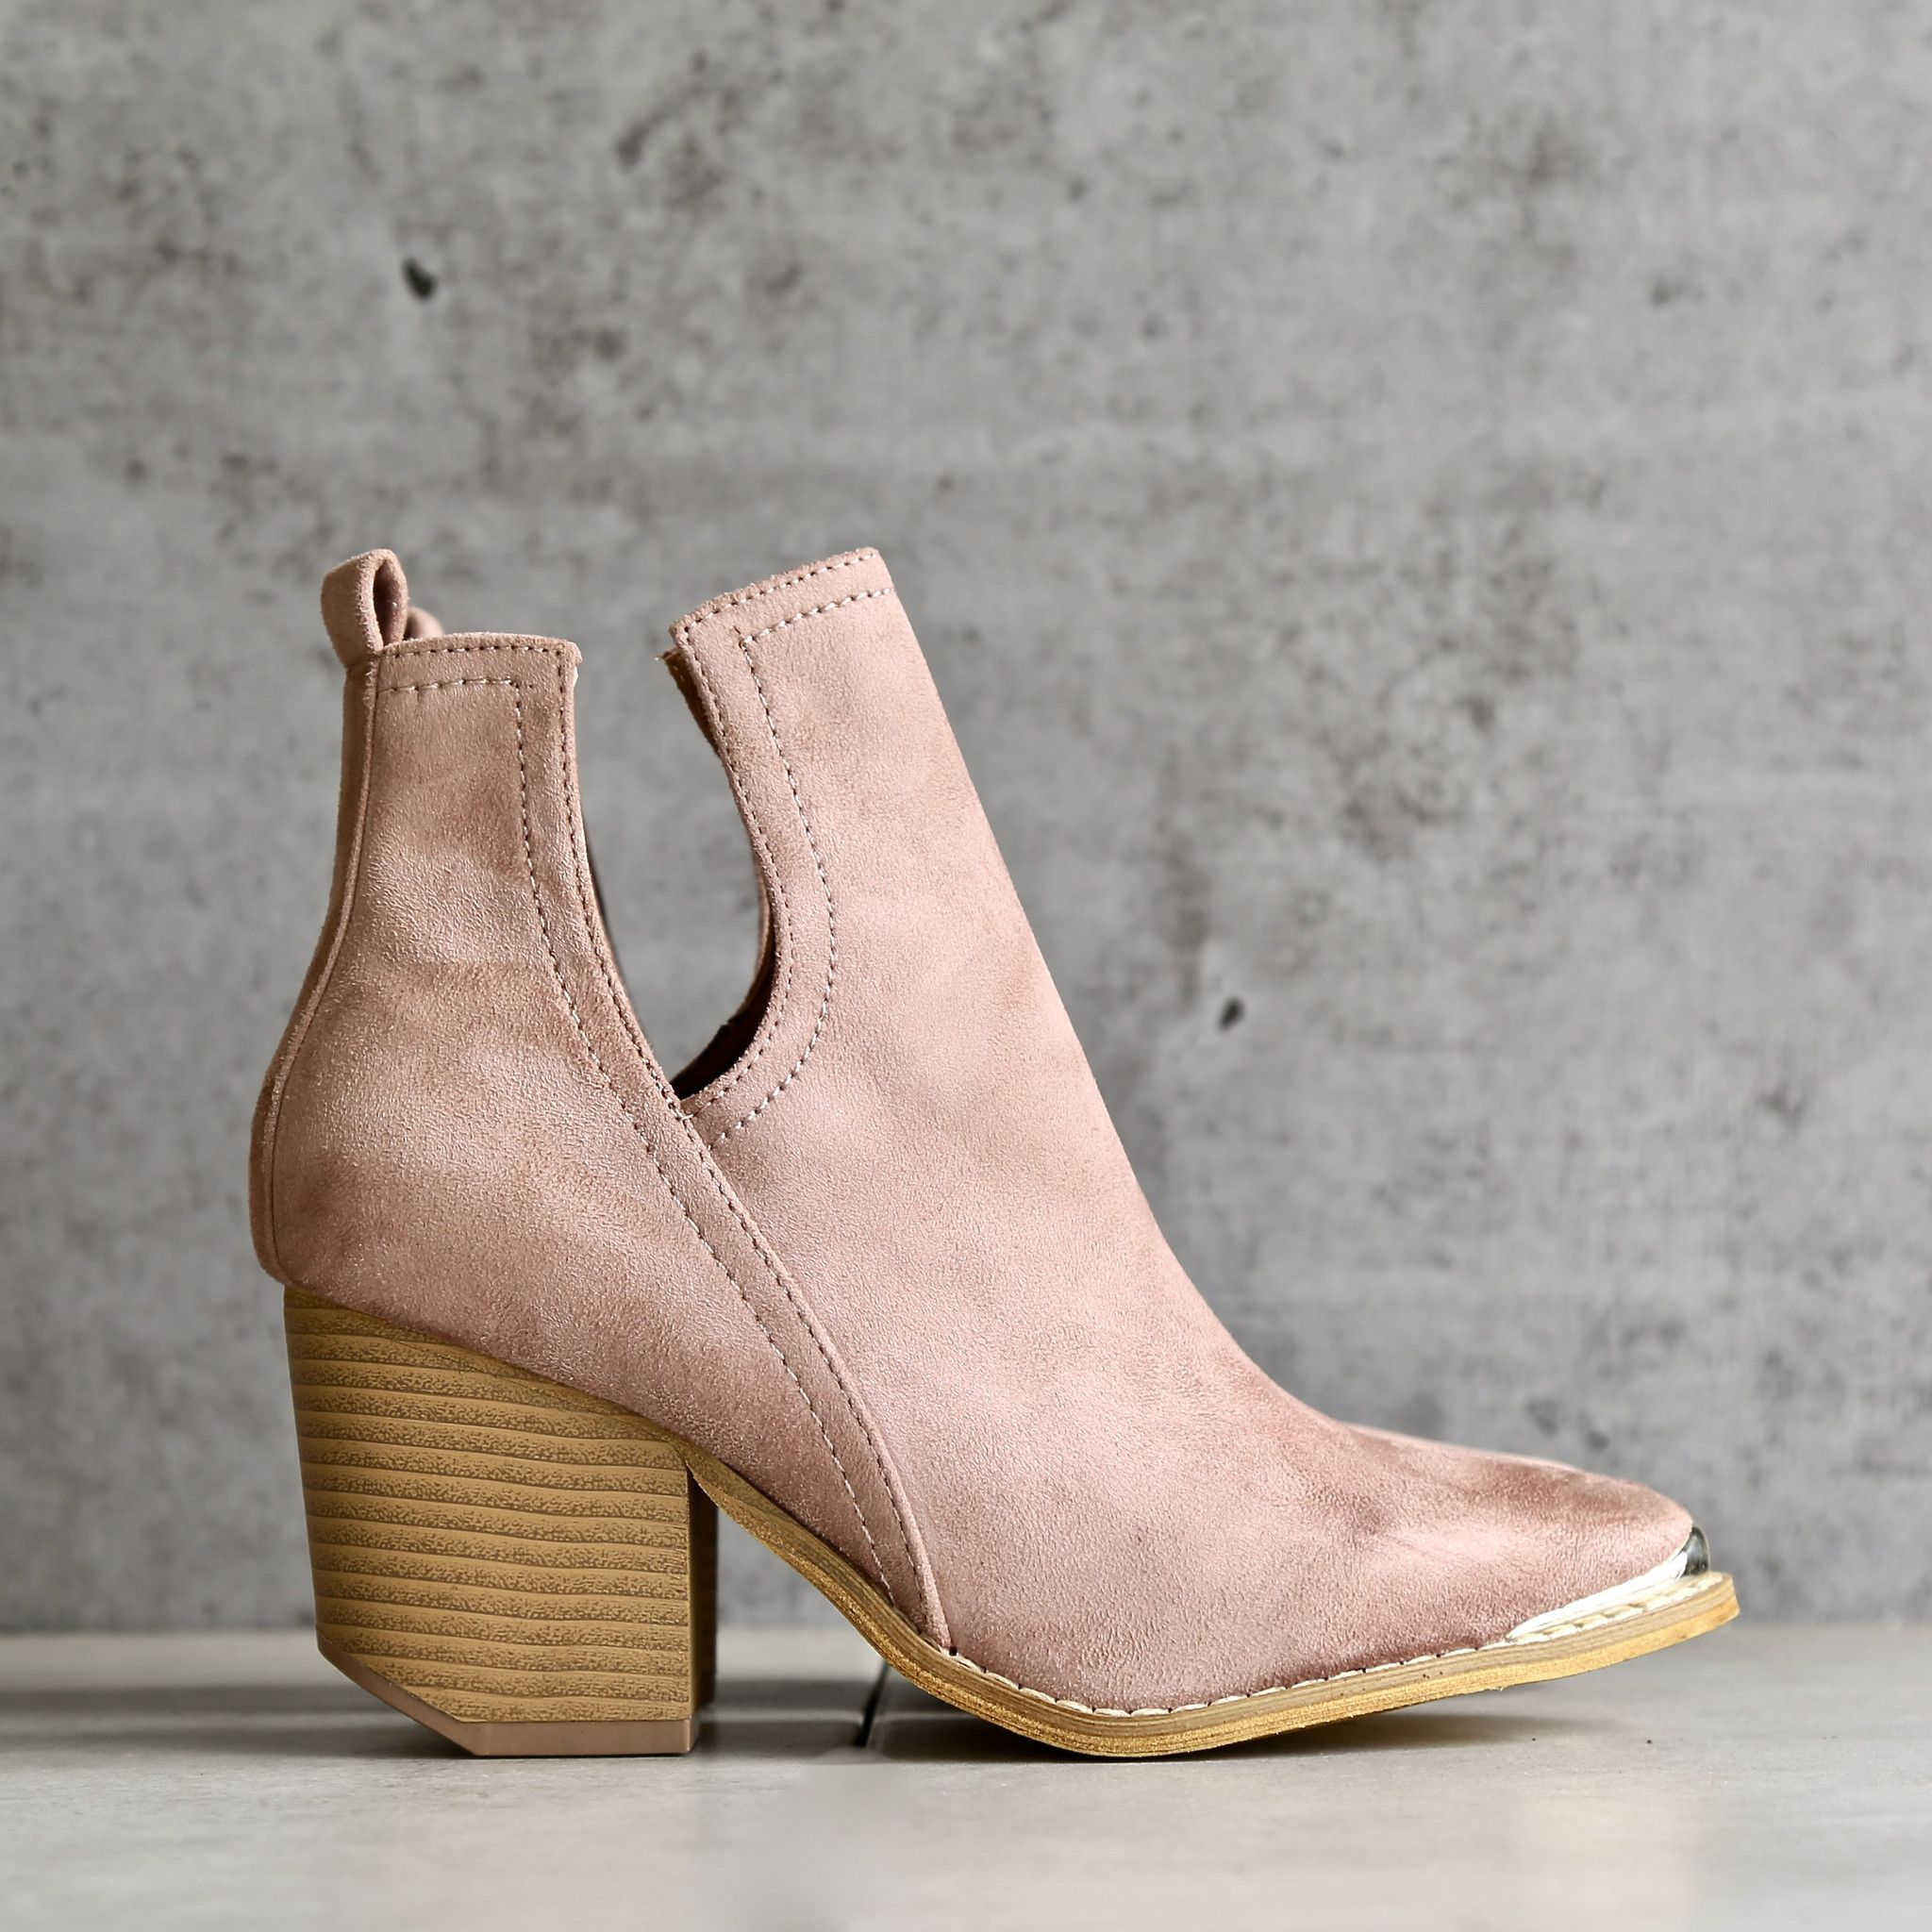 a76016ee6639 Vegan suede side cut out bootie with metal tip - rose | { shoes ...